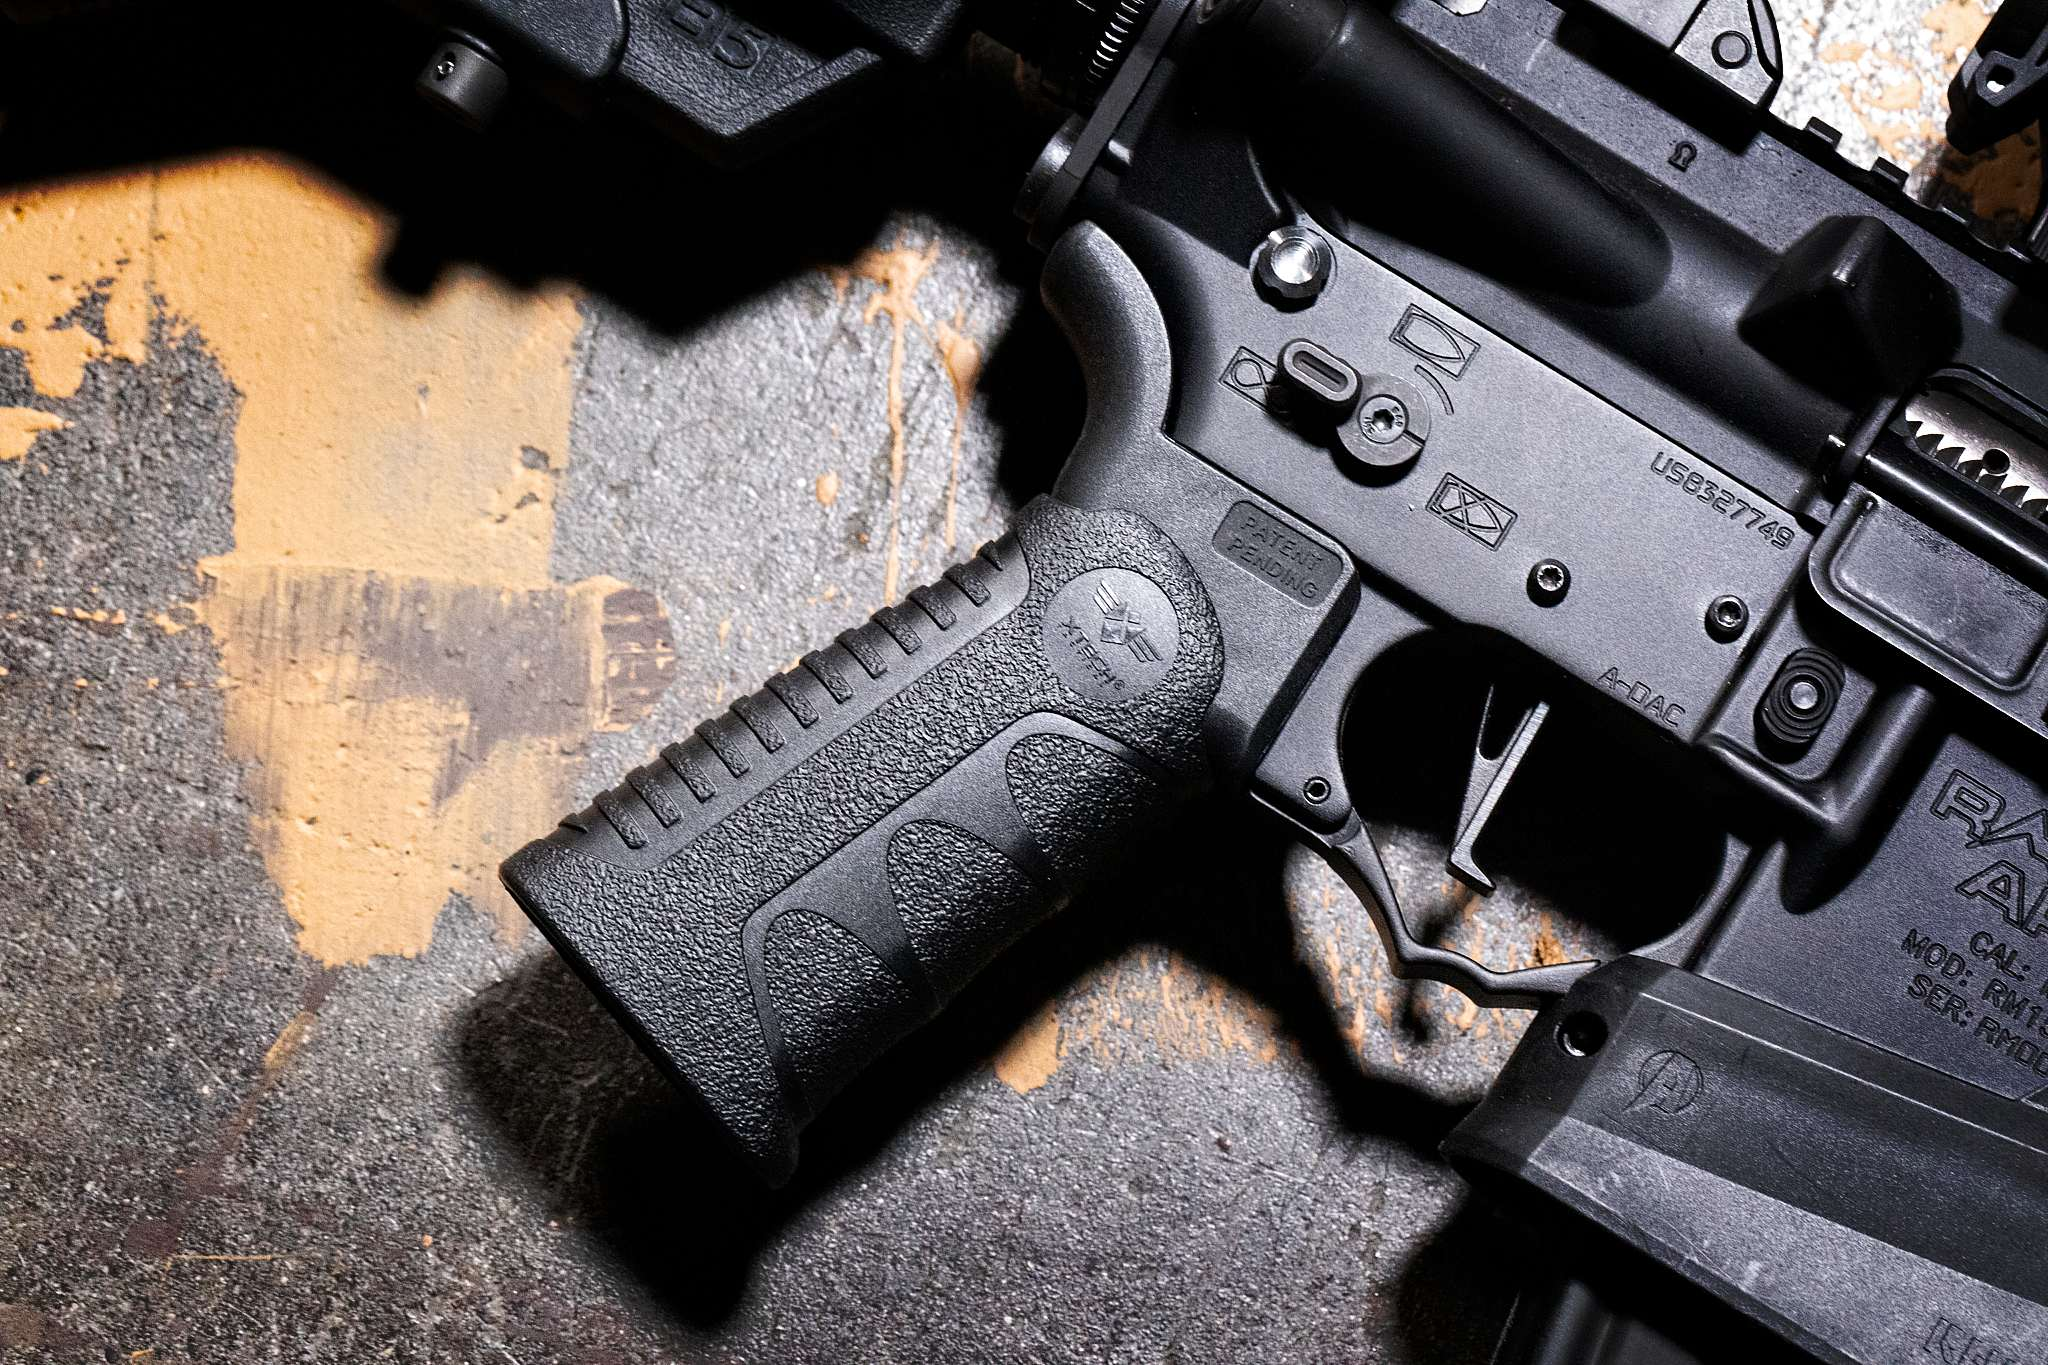 XTech Tactical Expands ATG Grip Line with Heavy Texture Grip